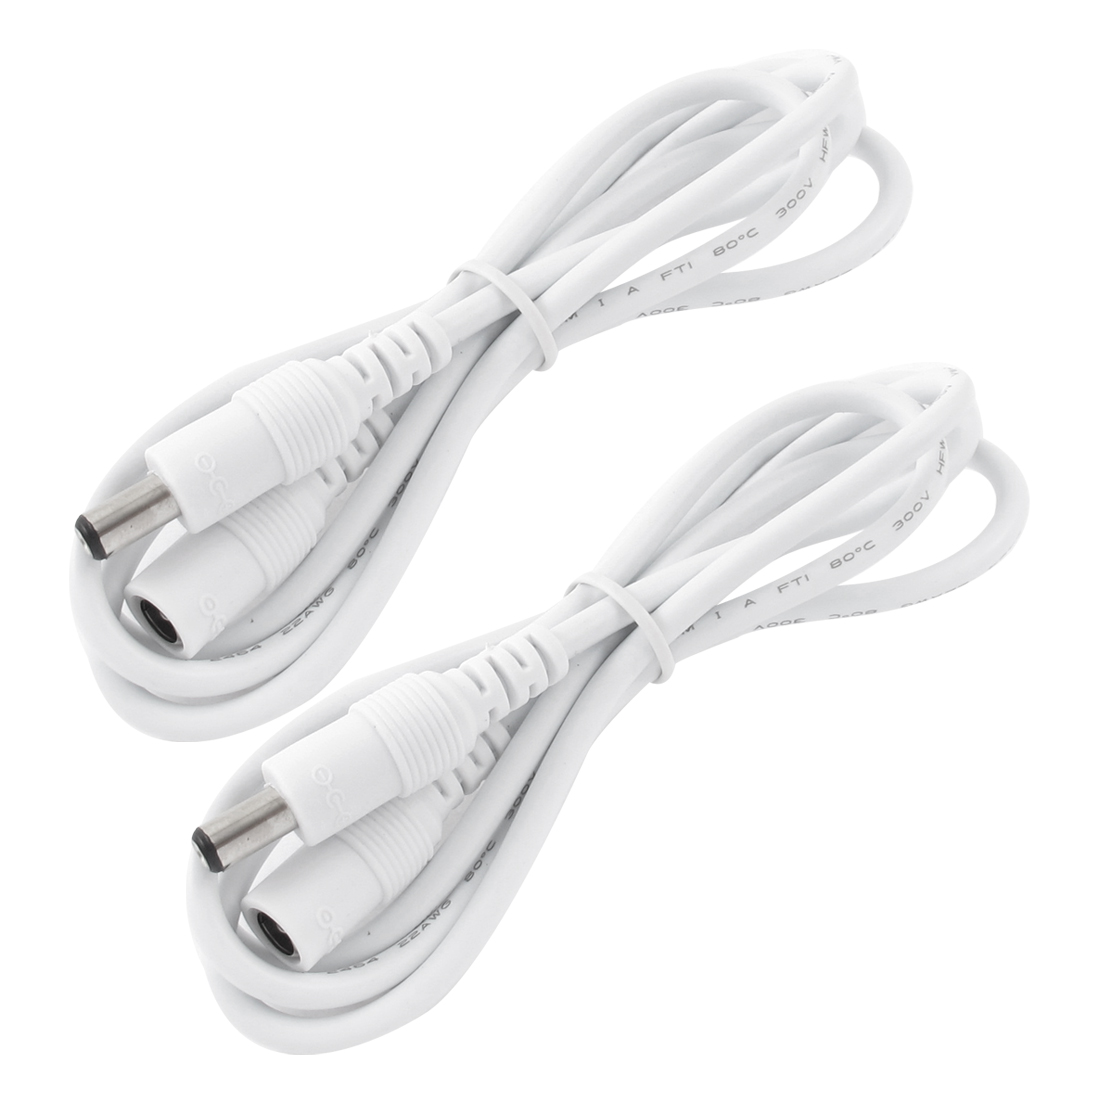 2PCS DC 5.5x2.1mm Male to Female Connector CCTV Camera Power Extension Cable 1M